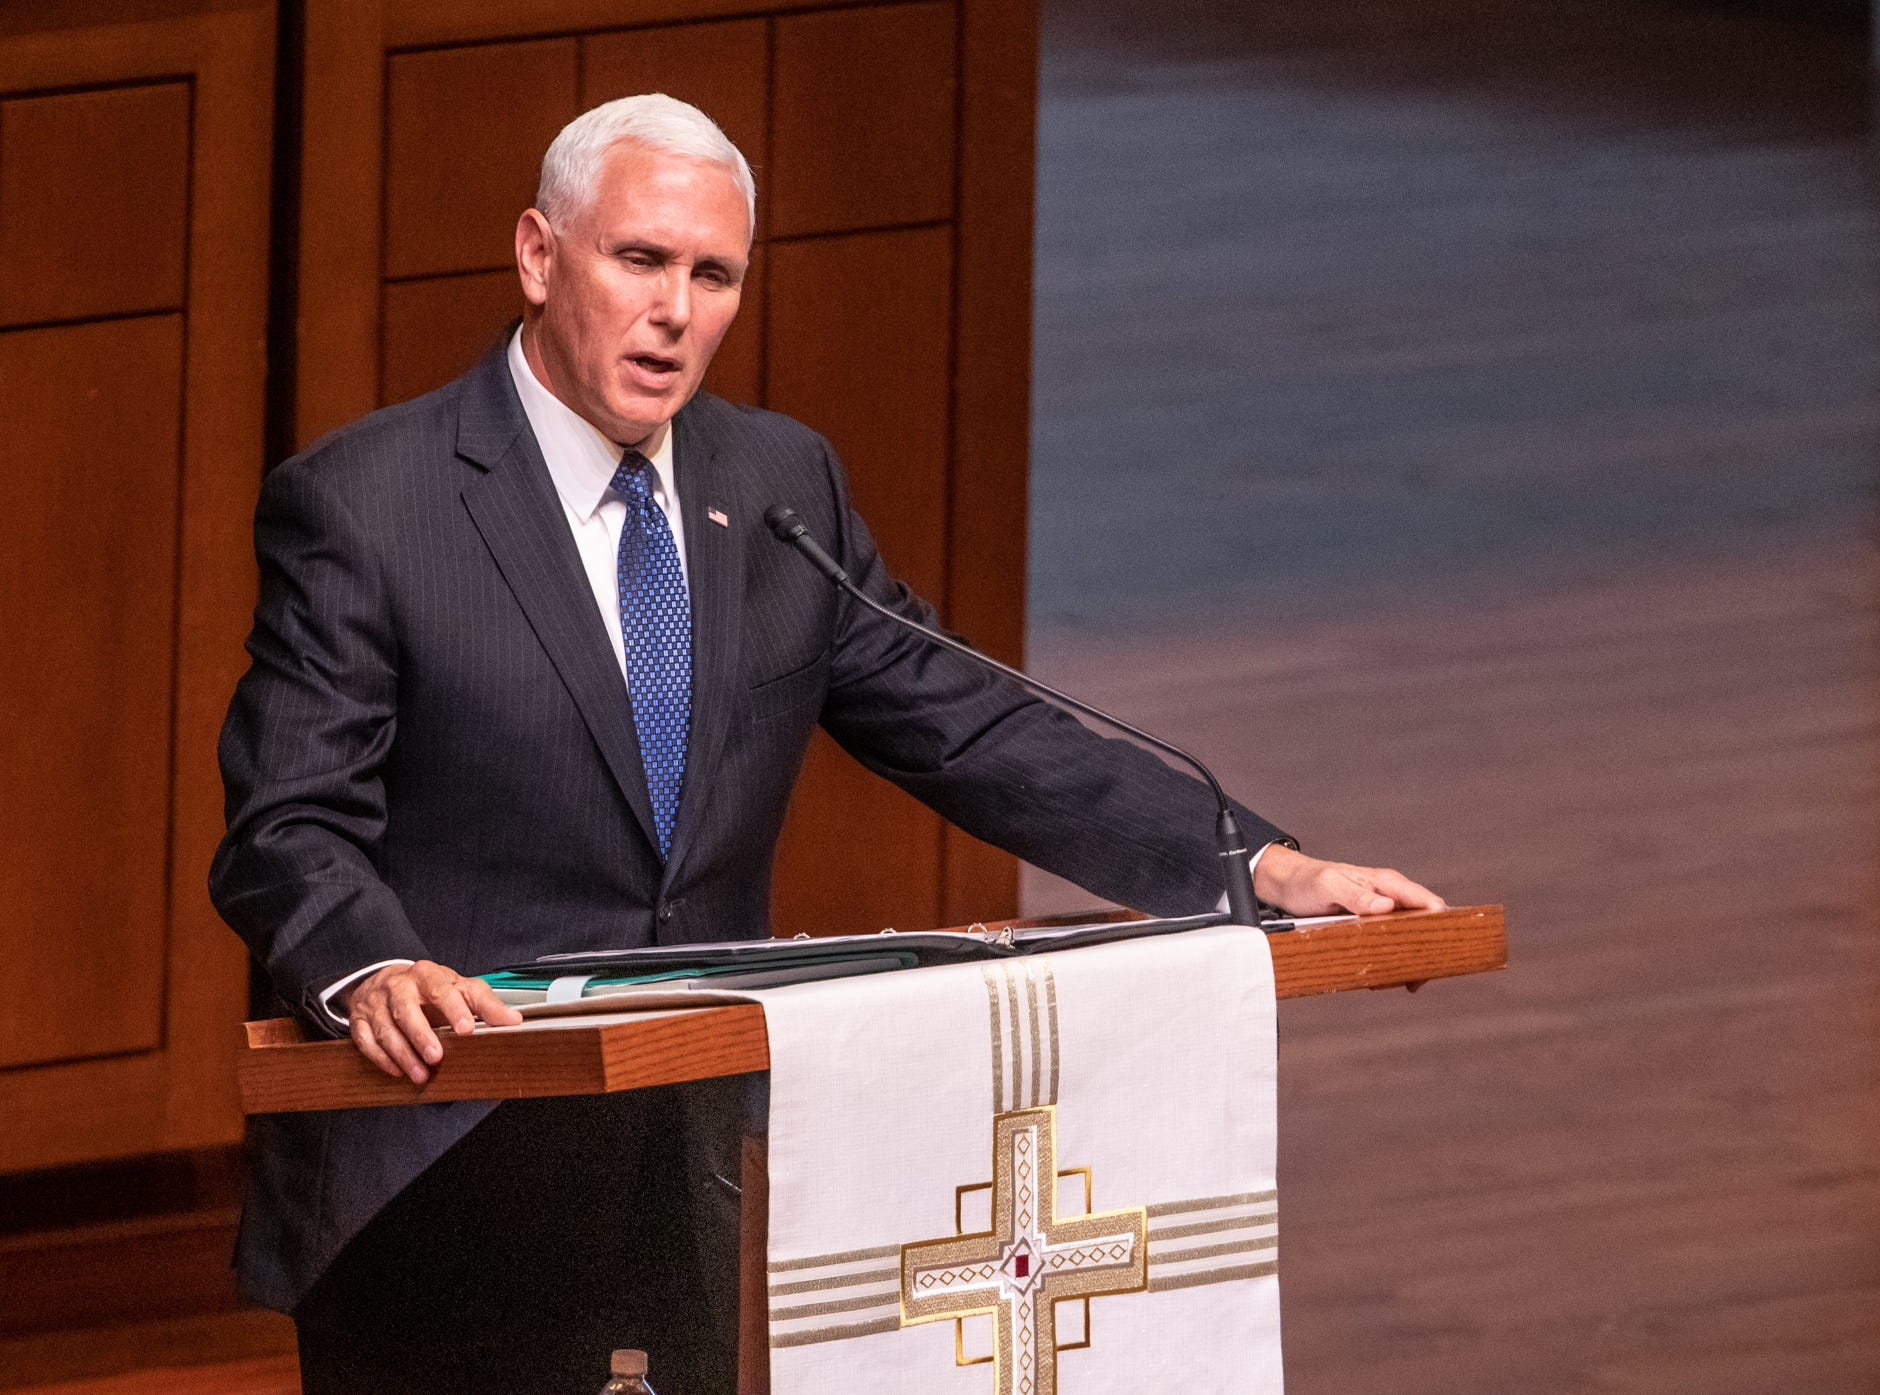 Vice President Mike Pence speaks during a memorial service for former U.S. Sen. Richard Lugar, during a memorial service held at Saint Luke's United Methodist Church in Indianapolis, on Wednesday, May 15, 2019. Lugar served as mayor of Indianapolis from 1968 to 1975 and U.S. senator from 1977 to 2013. He died April 28, 2019, at the age of 87.